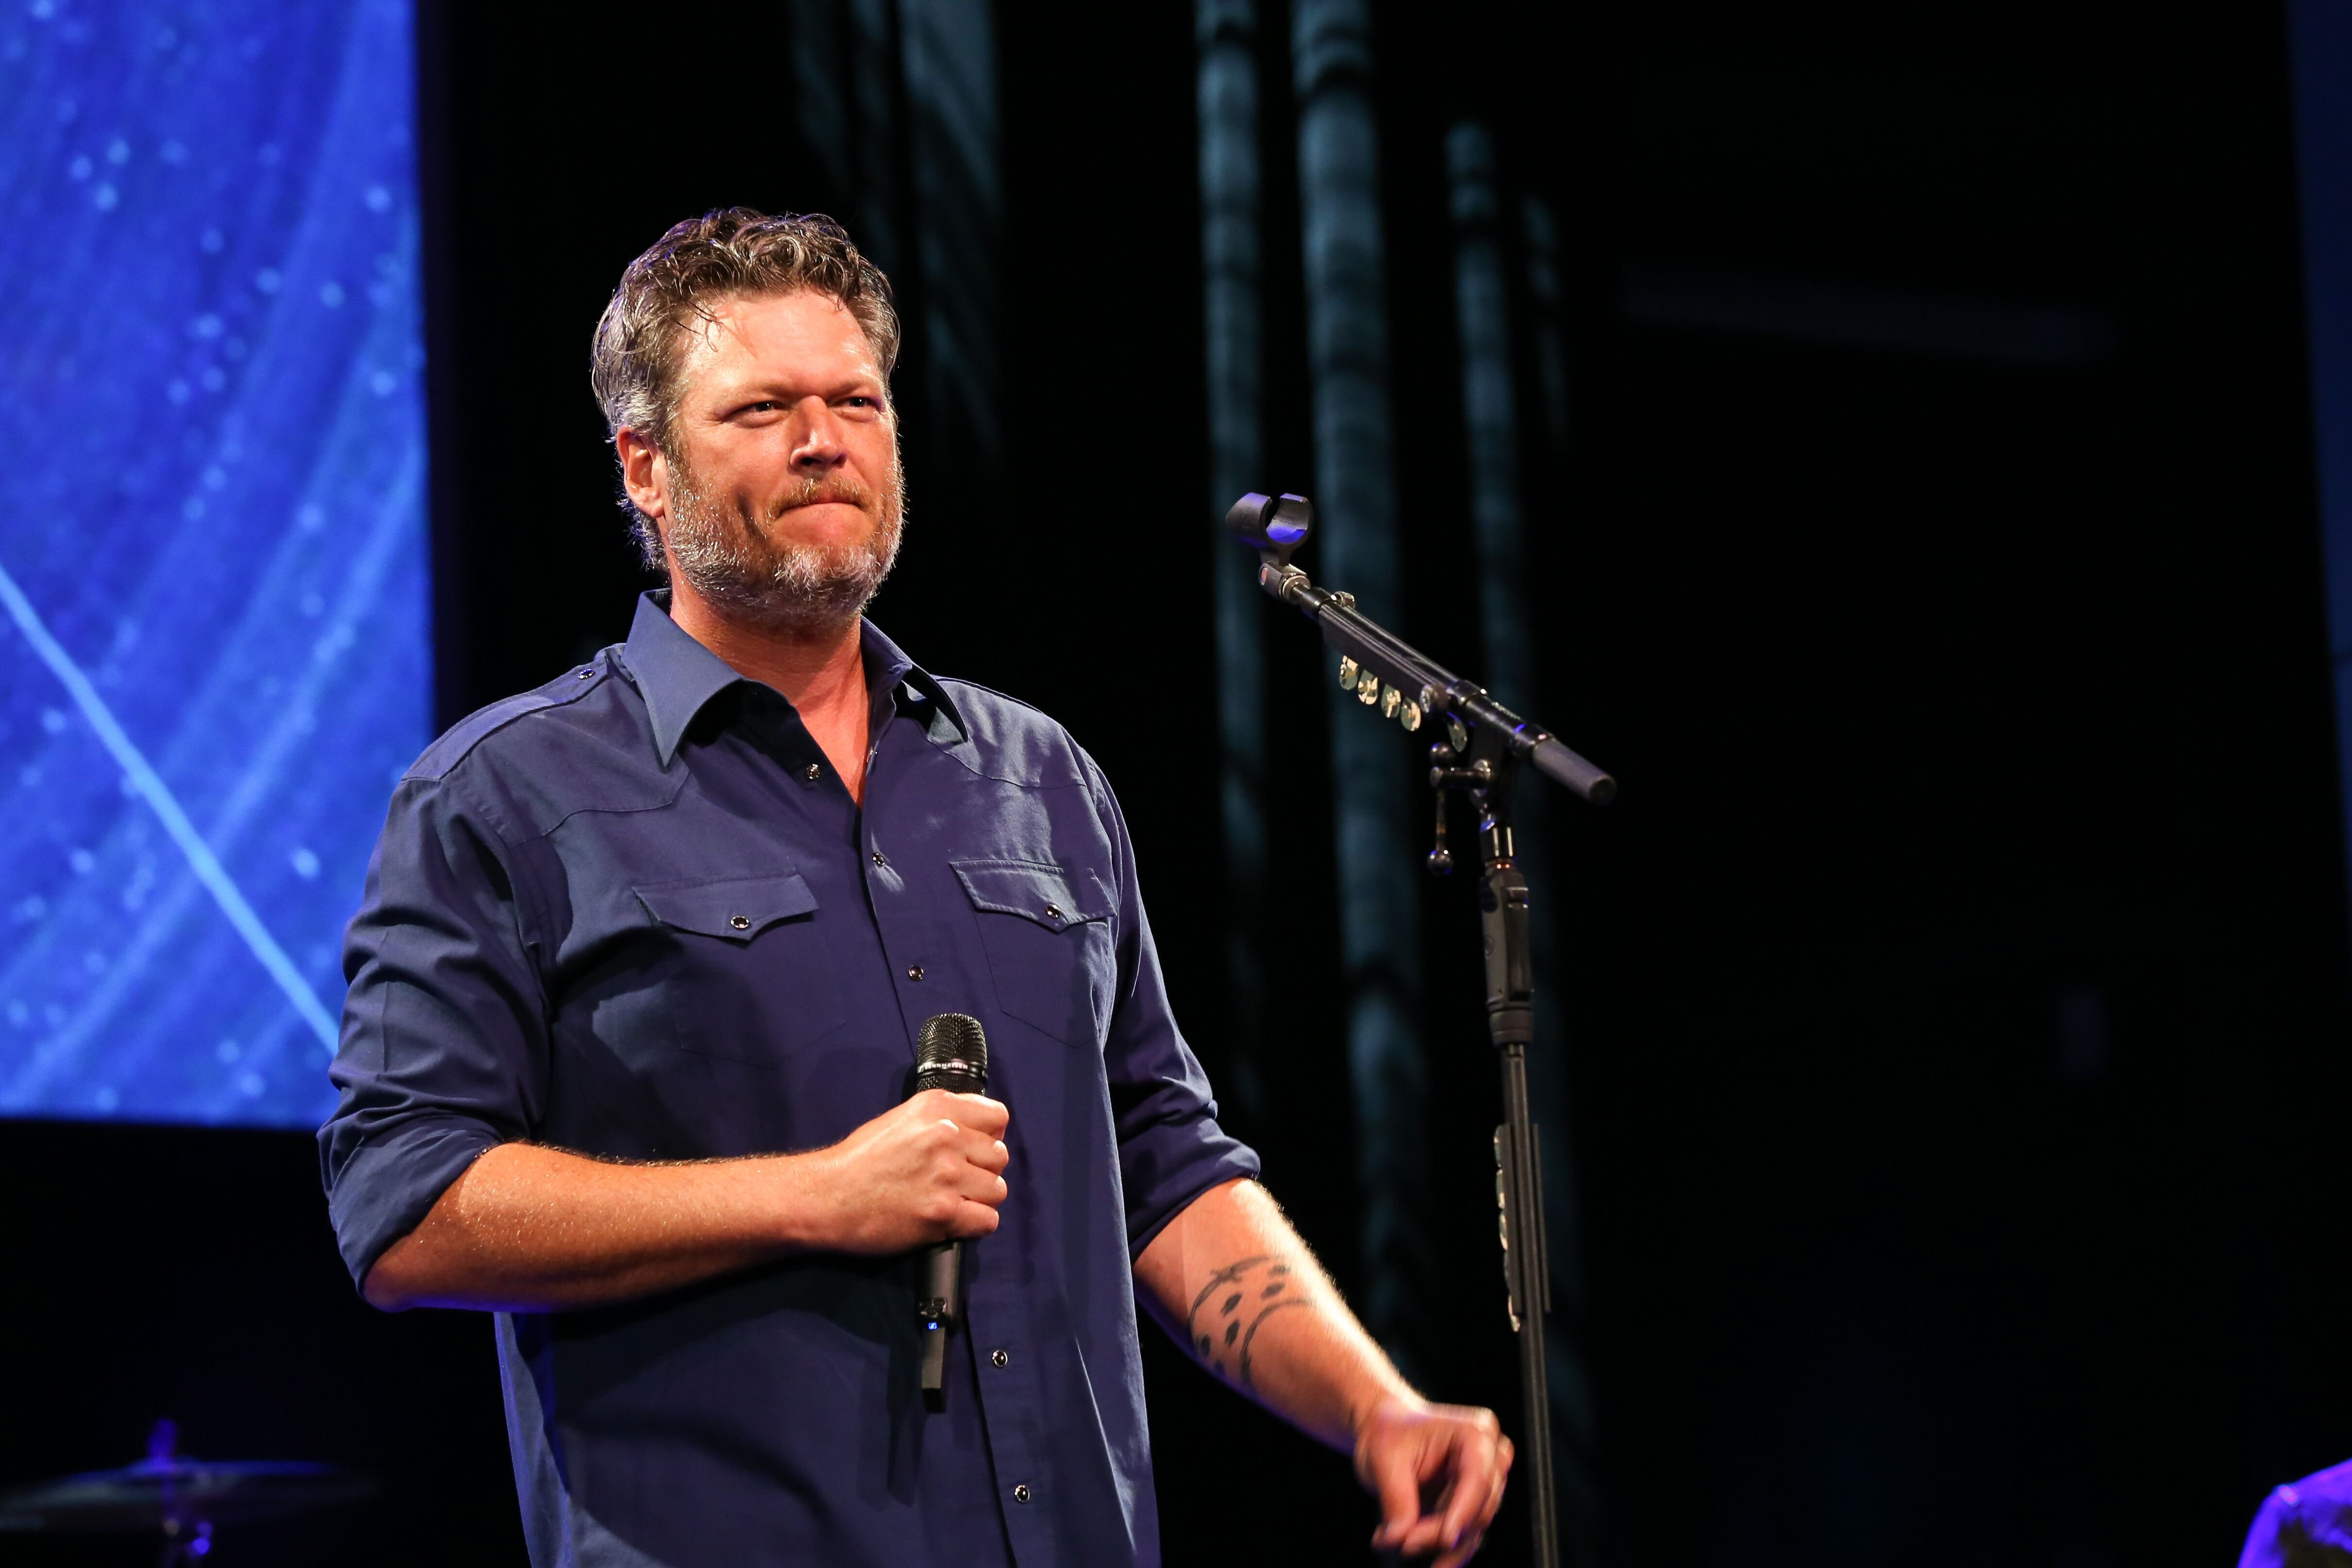 Blake Shelton at the Musicians On Call 20th Anniversary Kickoff Celebration on May 31, 2019, in Nashville, Tennessee | Photo: Terry Wyatt/Getty Images